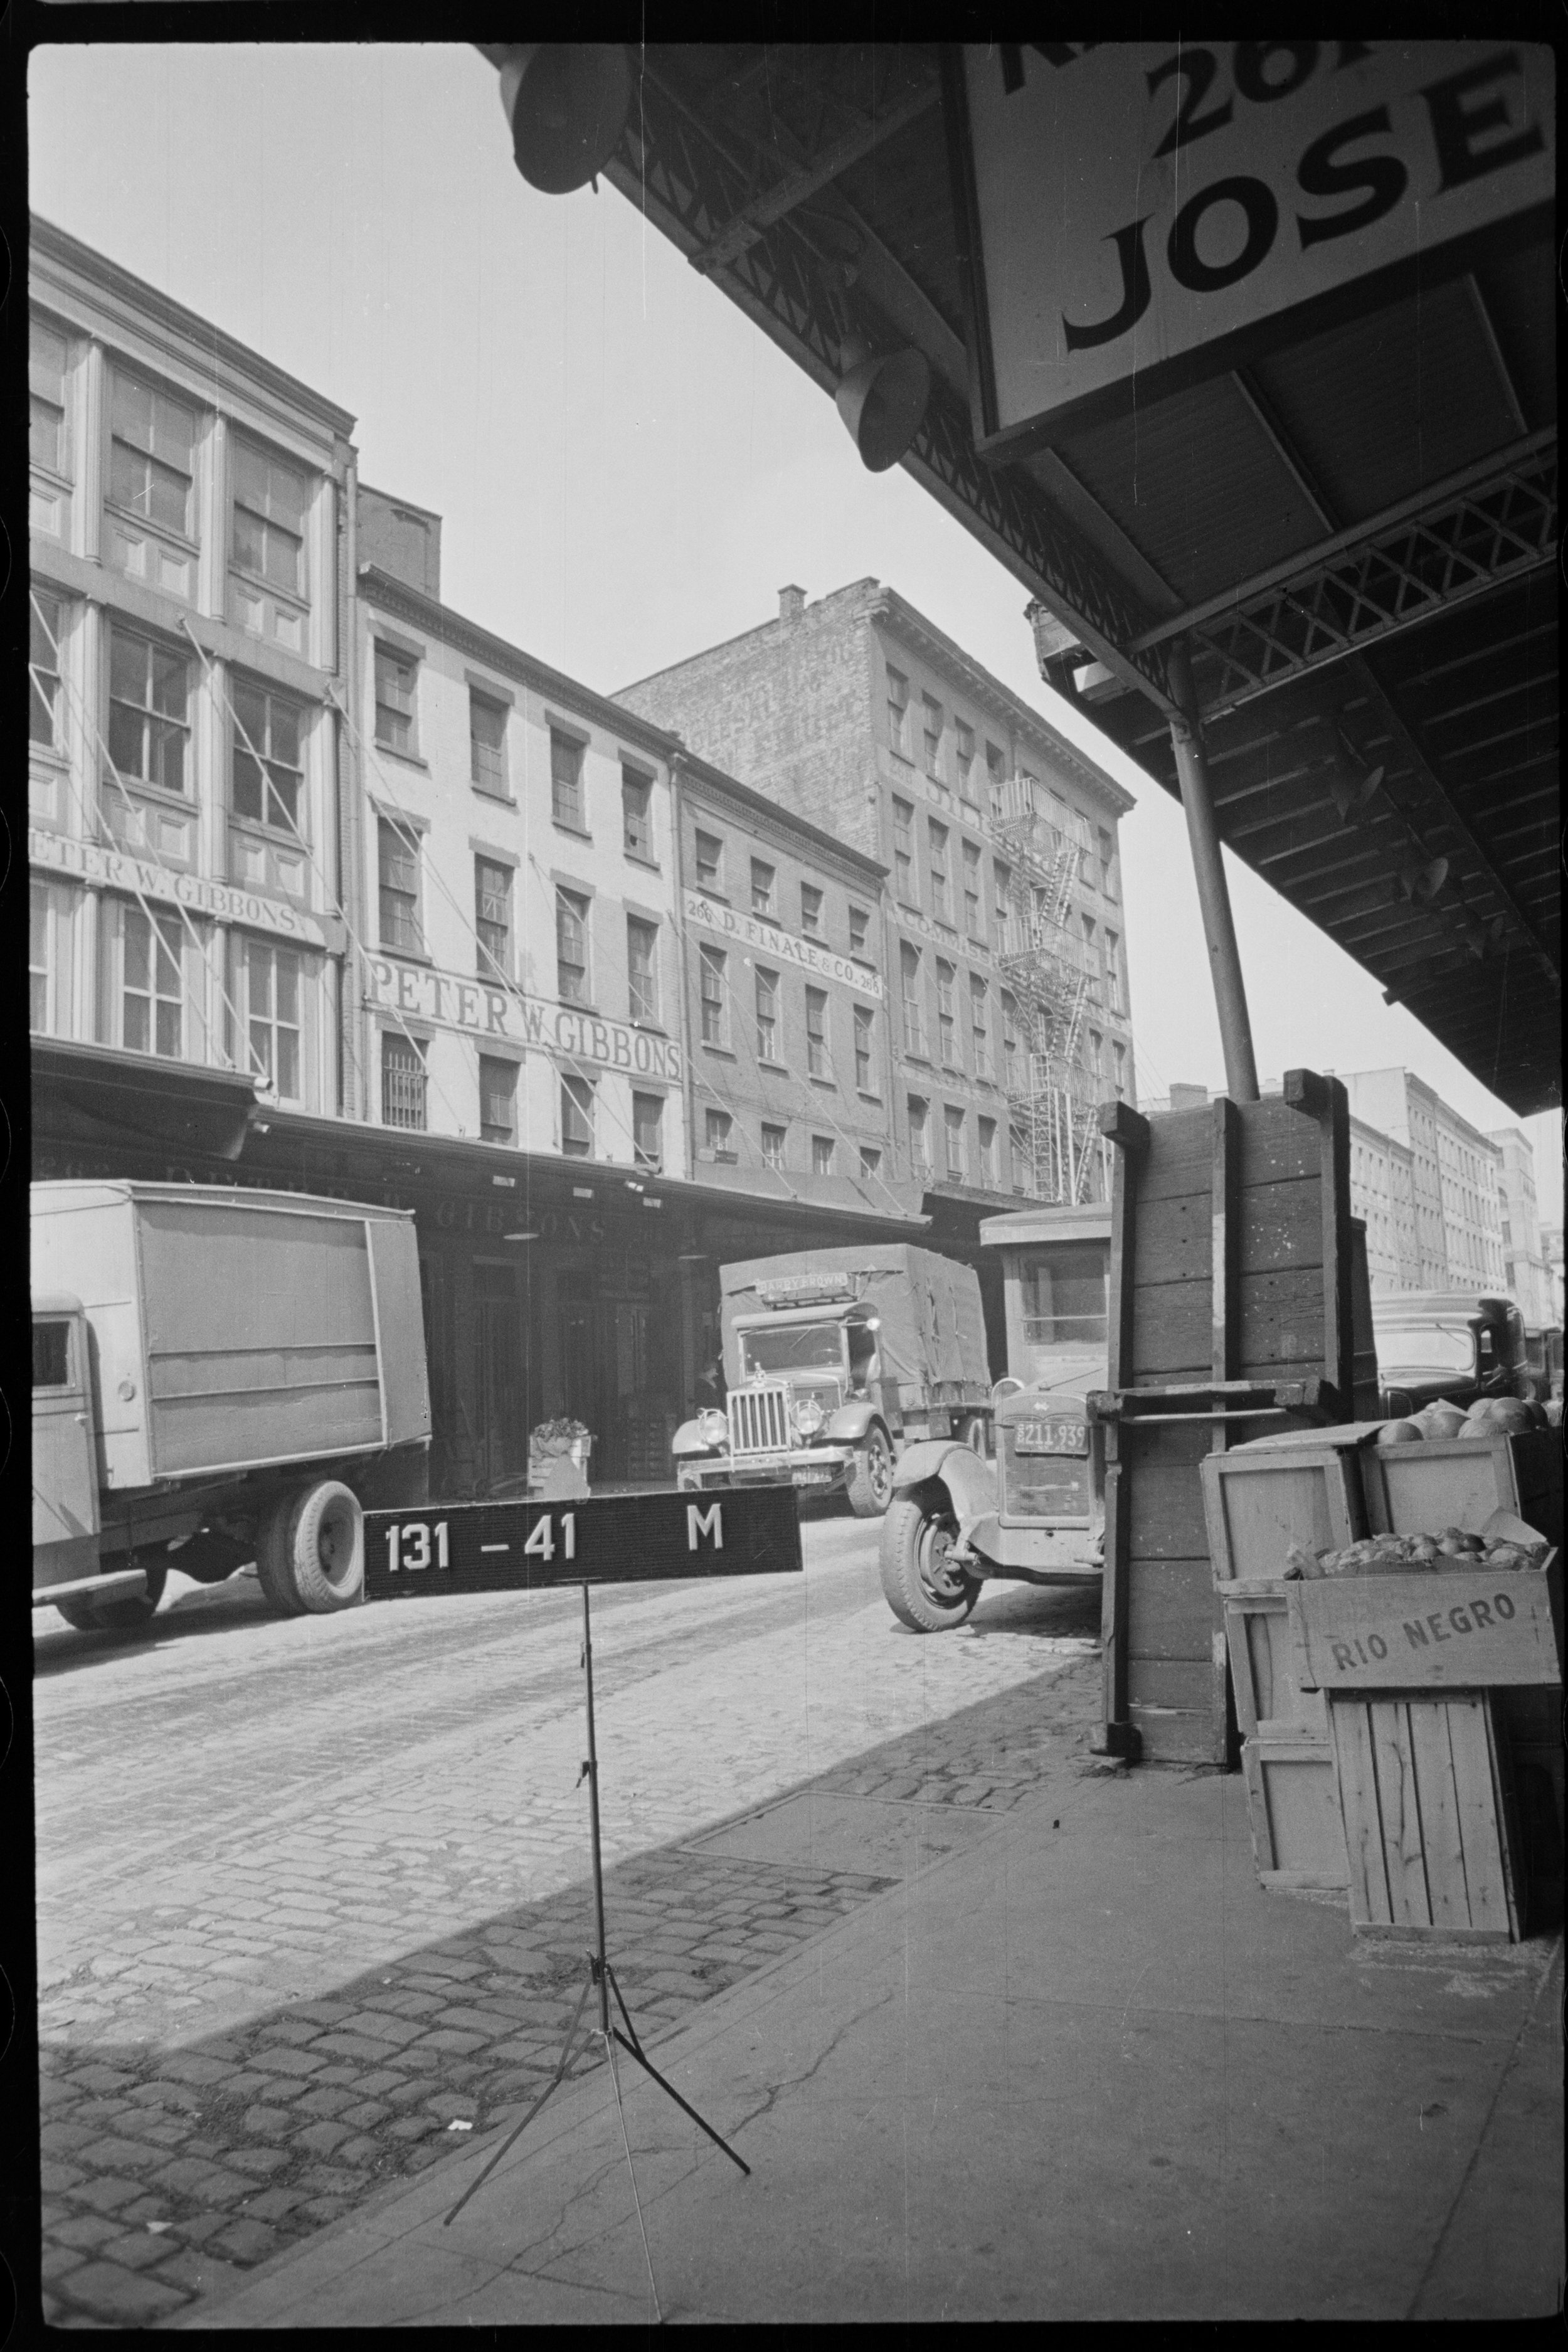 264 Washington Street, ca. 1940. Sal Traina's wholesale shop received an emergency shipment of 24,000 lbs of bananas in 1942. Department of Finance Tax Photo Collection, NYC Municipal Archives.